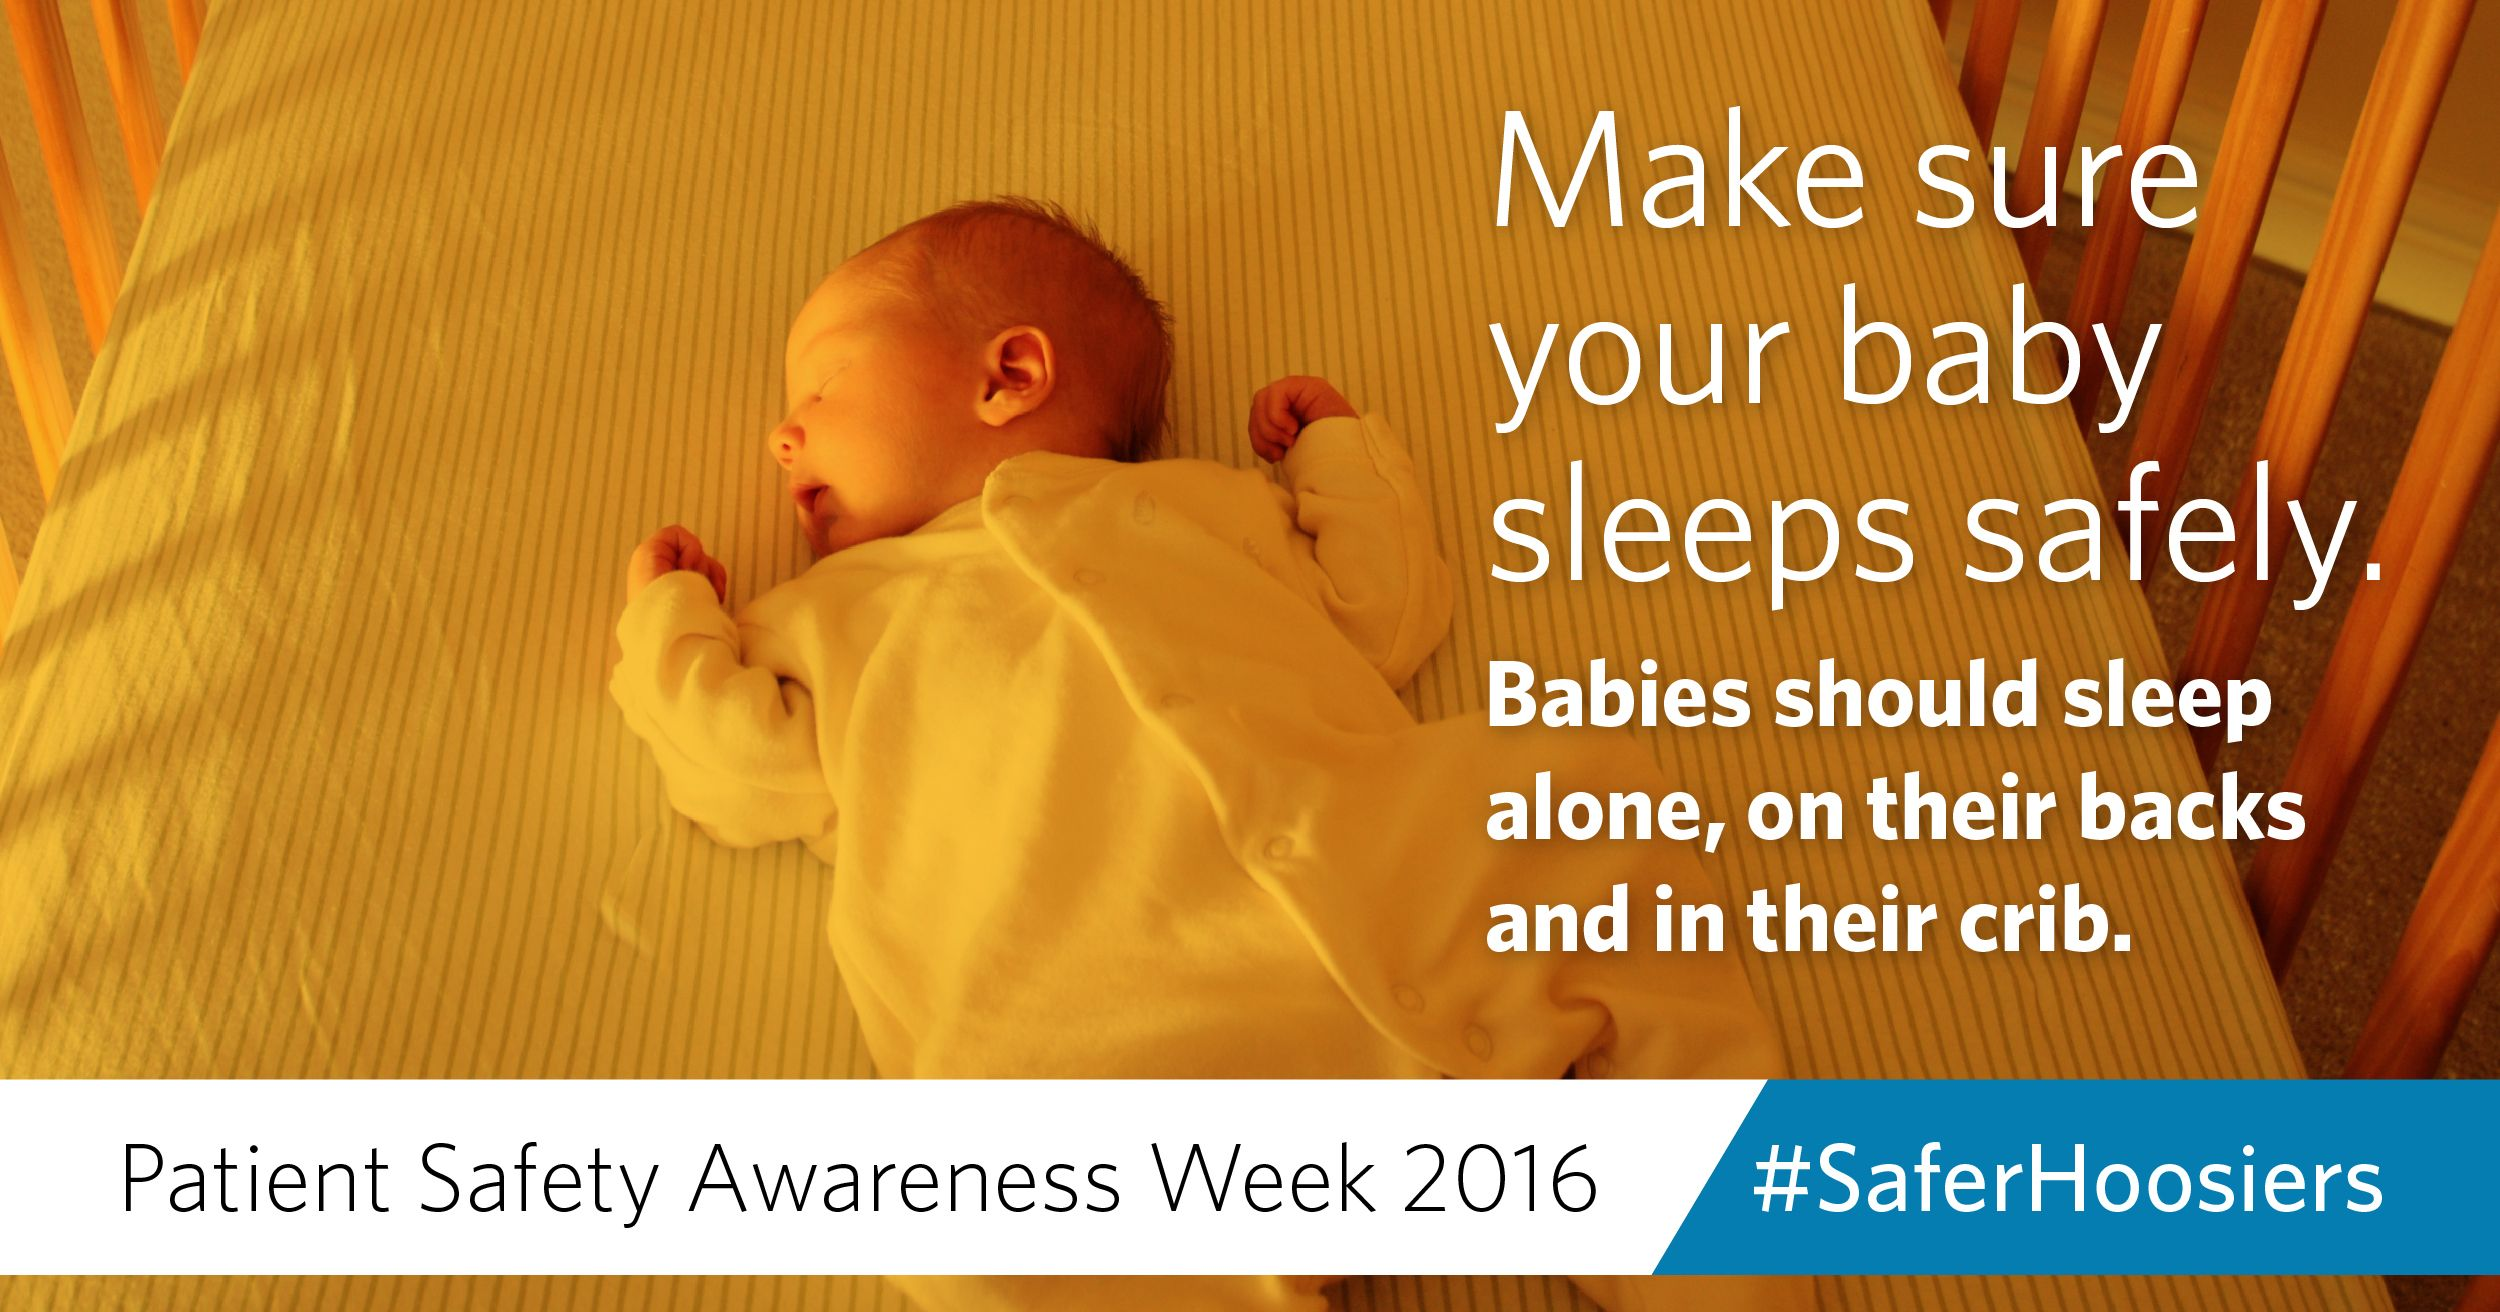 Safety tip Put babies on a firm sleep surface, like a